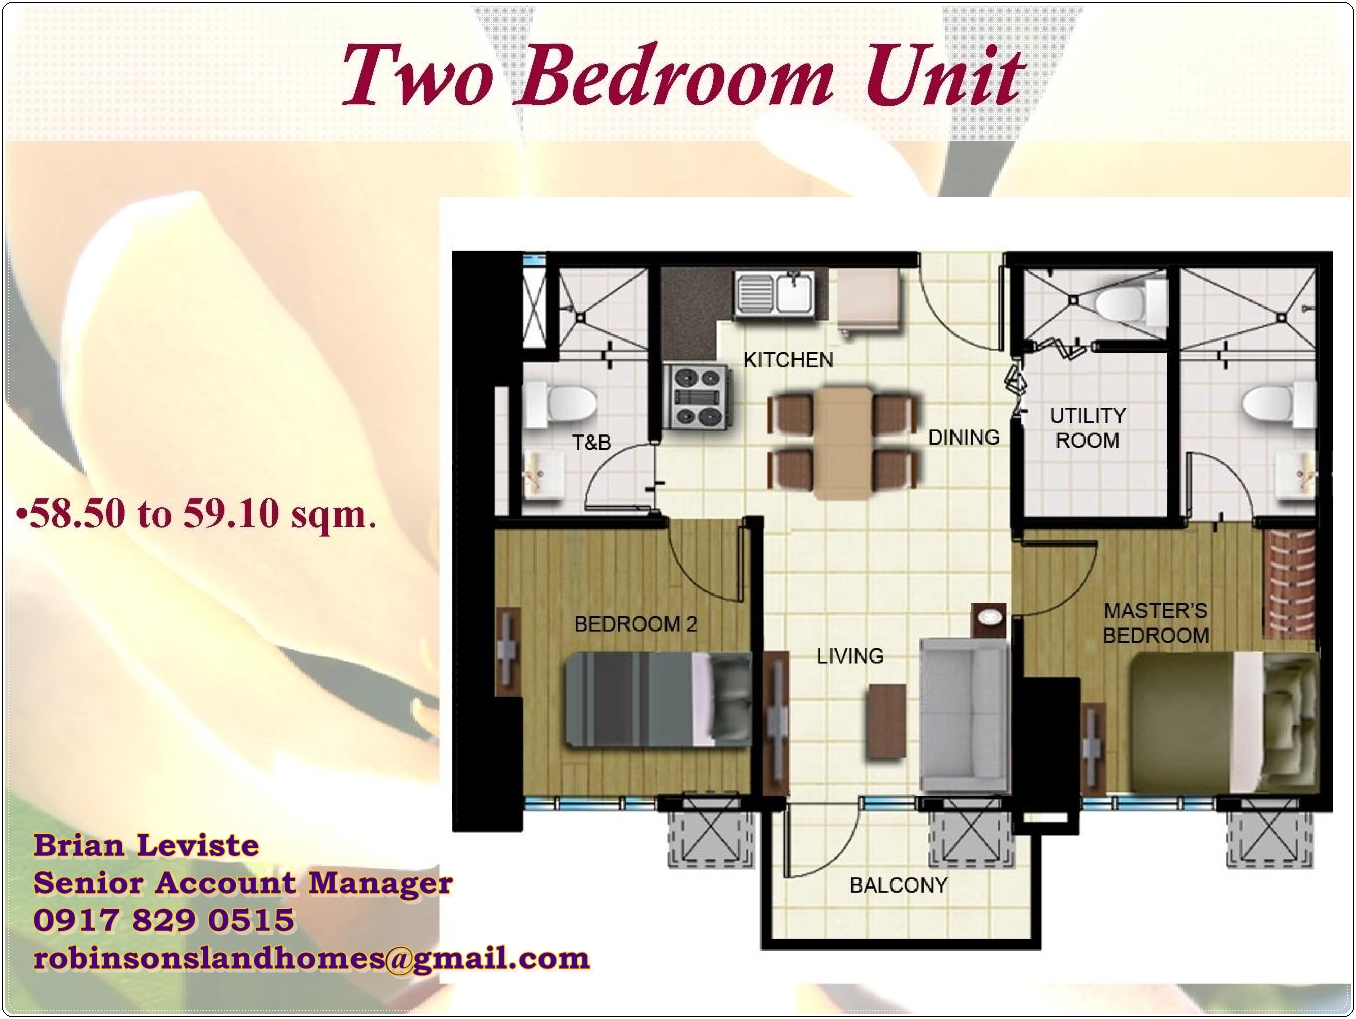 Two Bedroom Condo At Sqm Magnolia Residences New Manila Robinsons L